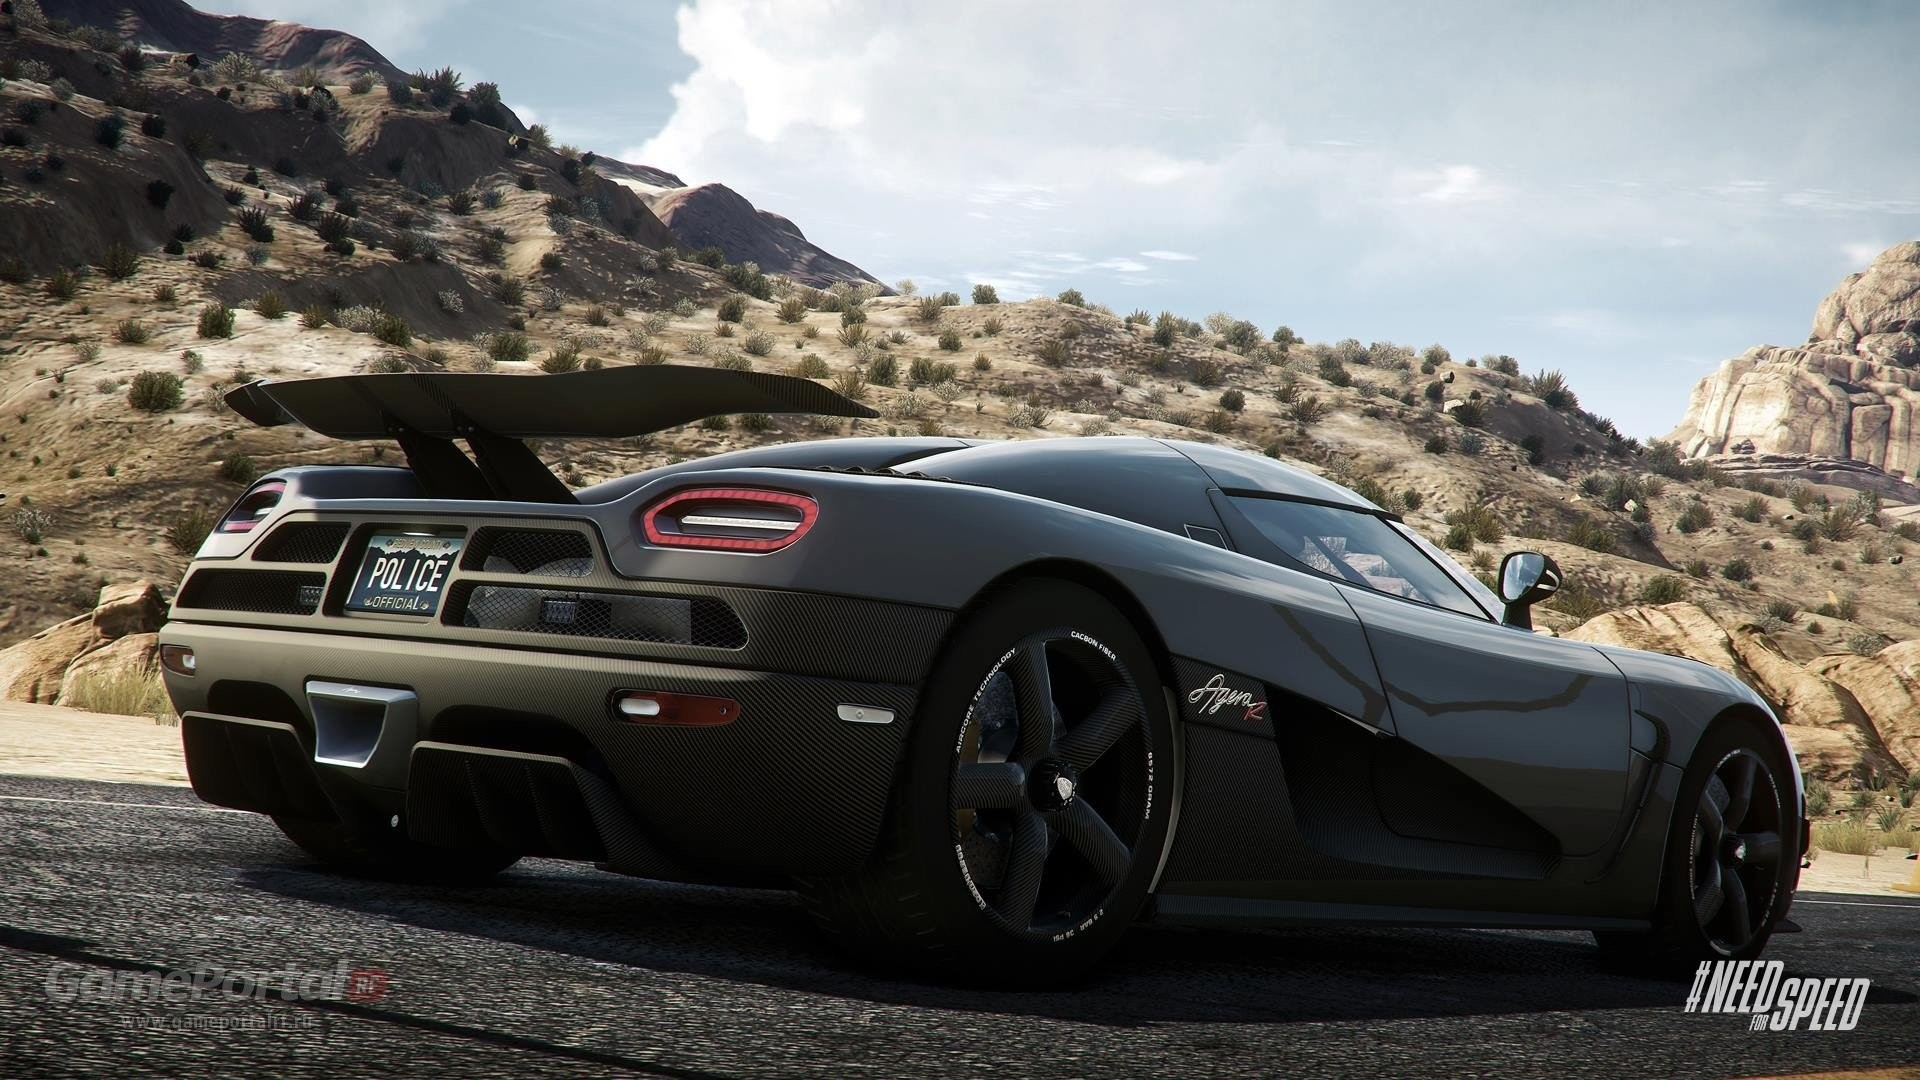 1920x1080 Video Game - Need For Speed: Rivals Wallpaper. Download! Next Wallpaper ·  Prev Wallpaper. Koenigsegg Agera R